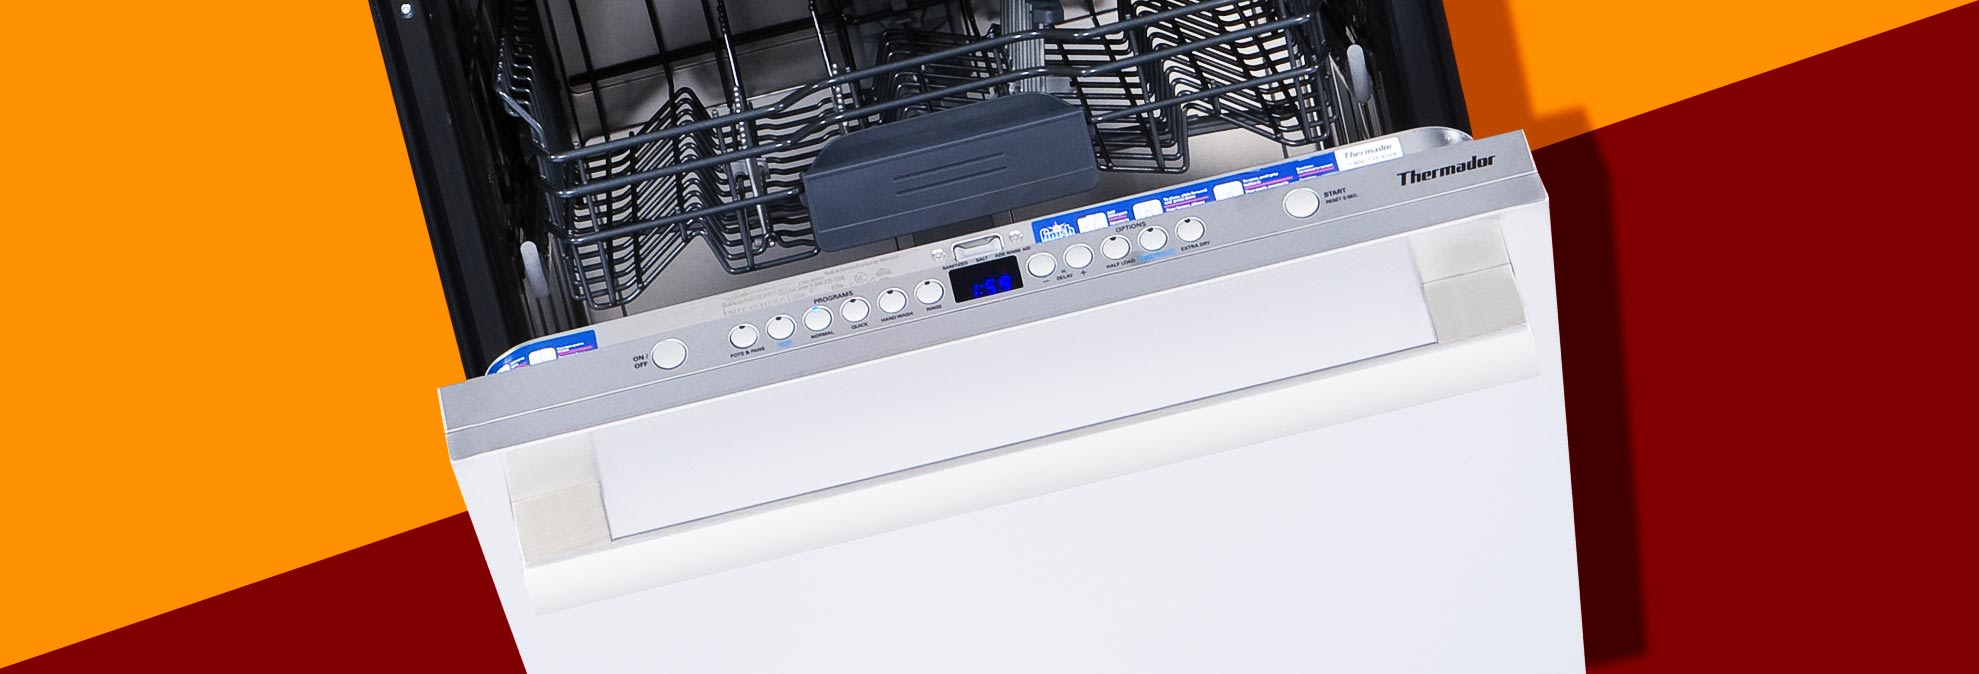 Astonishing Maker Of Bosch Expands Dishwasher Recall To 663 000 Models Wiring Digital Resources Indicompassionincorg